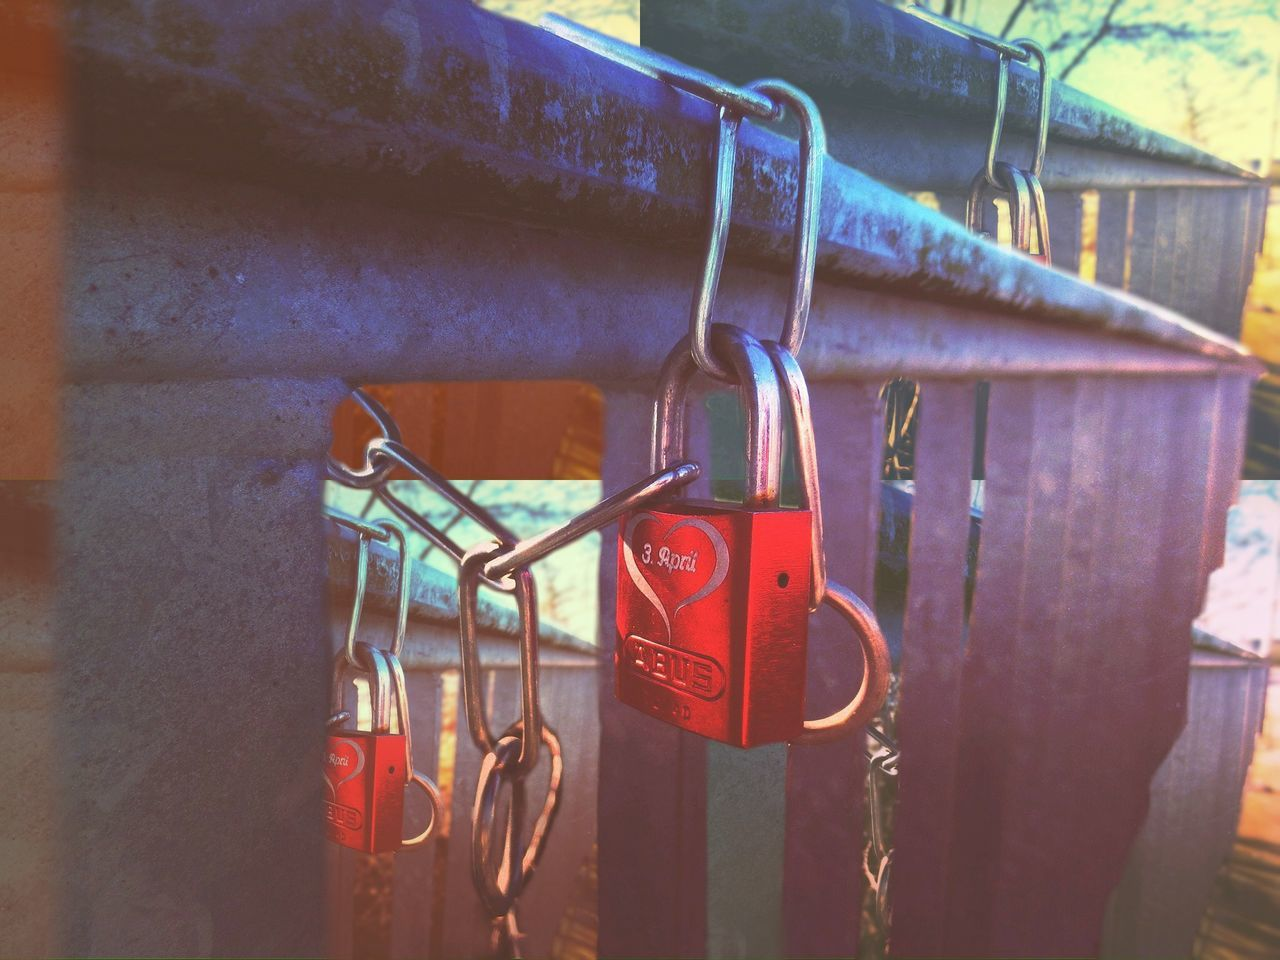 some Unknown Lovecouple at my surrounding have Today a Jubilee Locklove - Edit Popart Lock Fence Railing Red Pink Key Love Iron Metal Northgermany Village View Tradition Traditional Couple Togetherness Symbol Chain Ritual